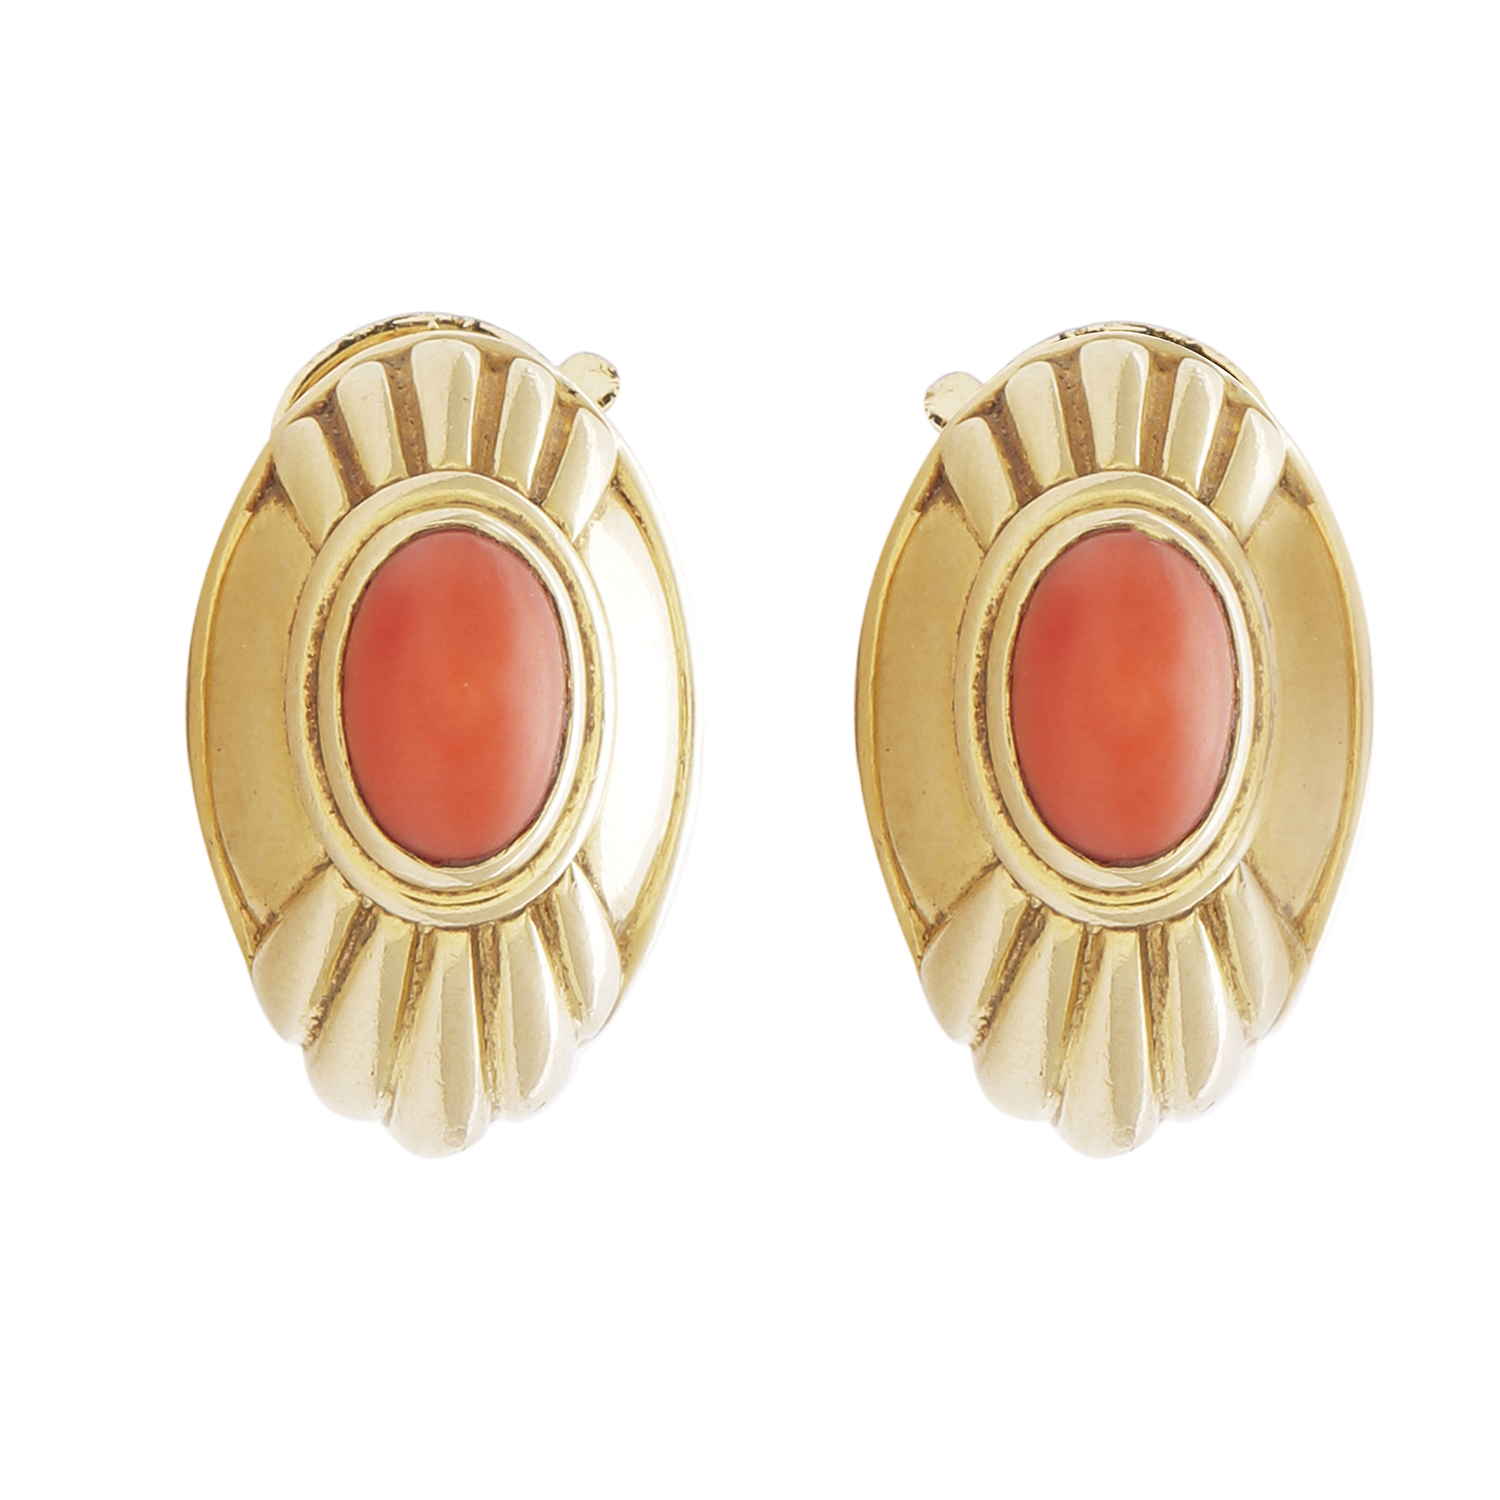 Los 58 - A PAIR OF VINTAGE CORAL CLIP EARRINGS, BOUCHERON in 18ct yellow gold, each set with a domed coral